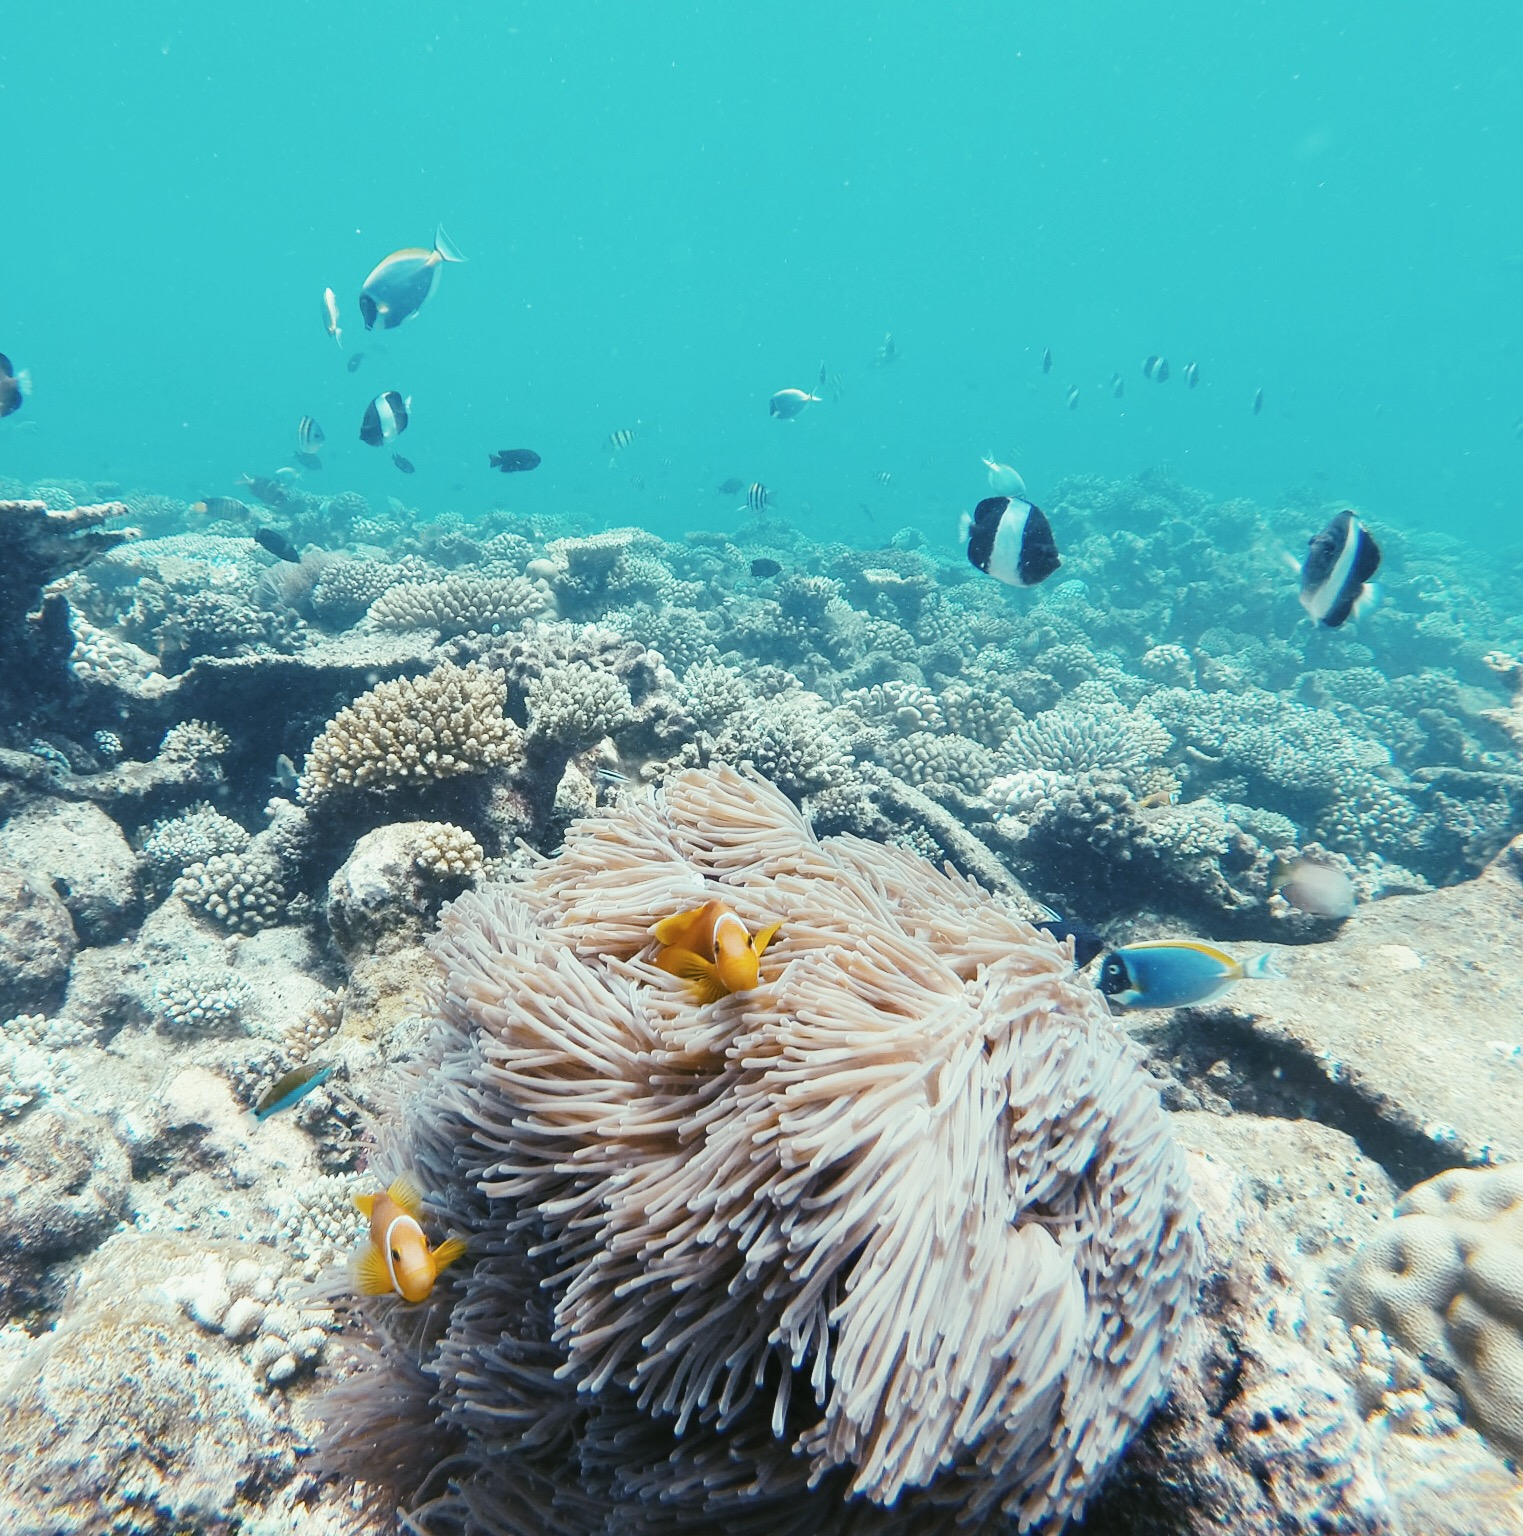 Sunscreen & Coral Reefs: How to Enjoy the Reefs without Destroying Them